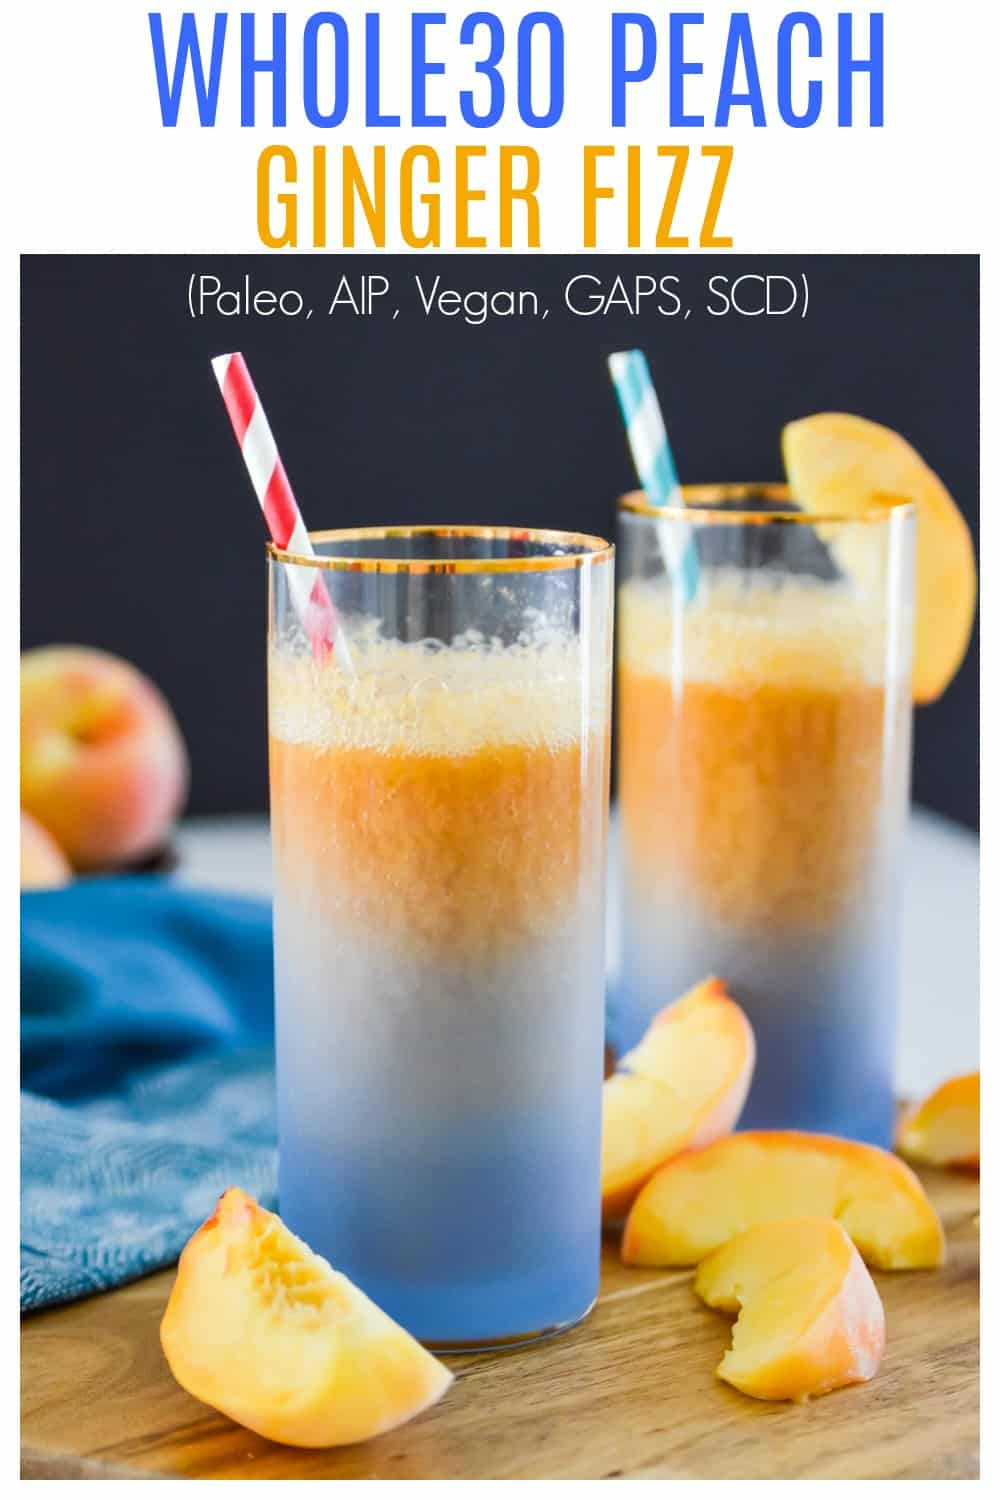 This Peach Ginger Fizz is the perfect summer drink! Made with no added sugars and only 3 ingredients you are going to love this Peach Ginger Fizz. Serve this Peach Ginger Fizz at your next party for an easy, healthy cocktail. #whole30 #paleo #cocktail #vegan #gaps #scd